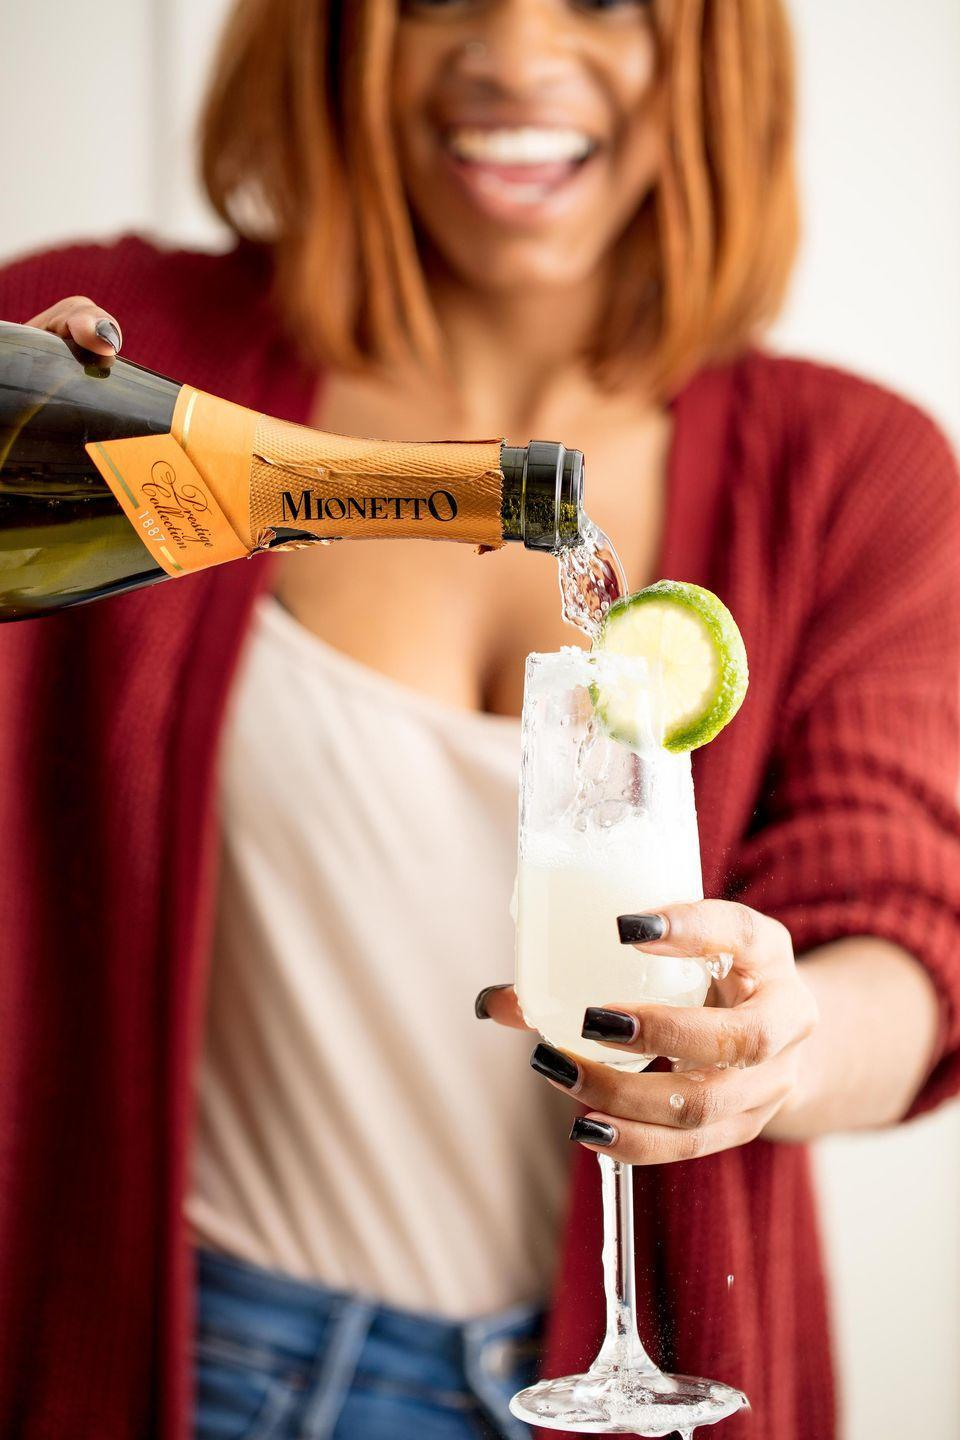 "<p>This margarita gets a festive boost with the addition of your favorite bubbly.<br></p><p>Get the recipe from <a href=""https://www.delish.com/cooking/recipe-ideas/recipes/a50633/champagne-margaritas-recipe/"" rel=""nofollow noopener"" target=""_blank"" data-ylk=""slk:Delish"" class=""link rapid-noclick-resp"">Delish</a>.</p>"